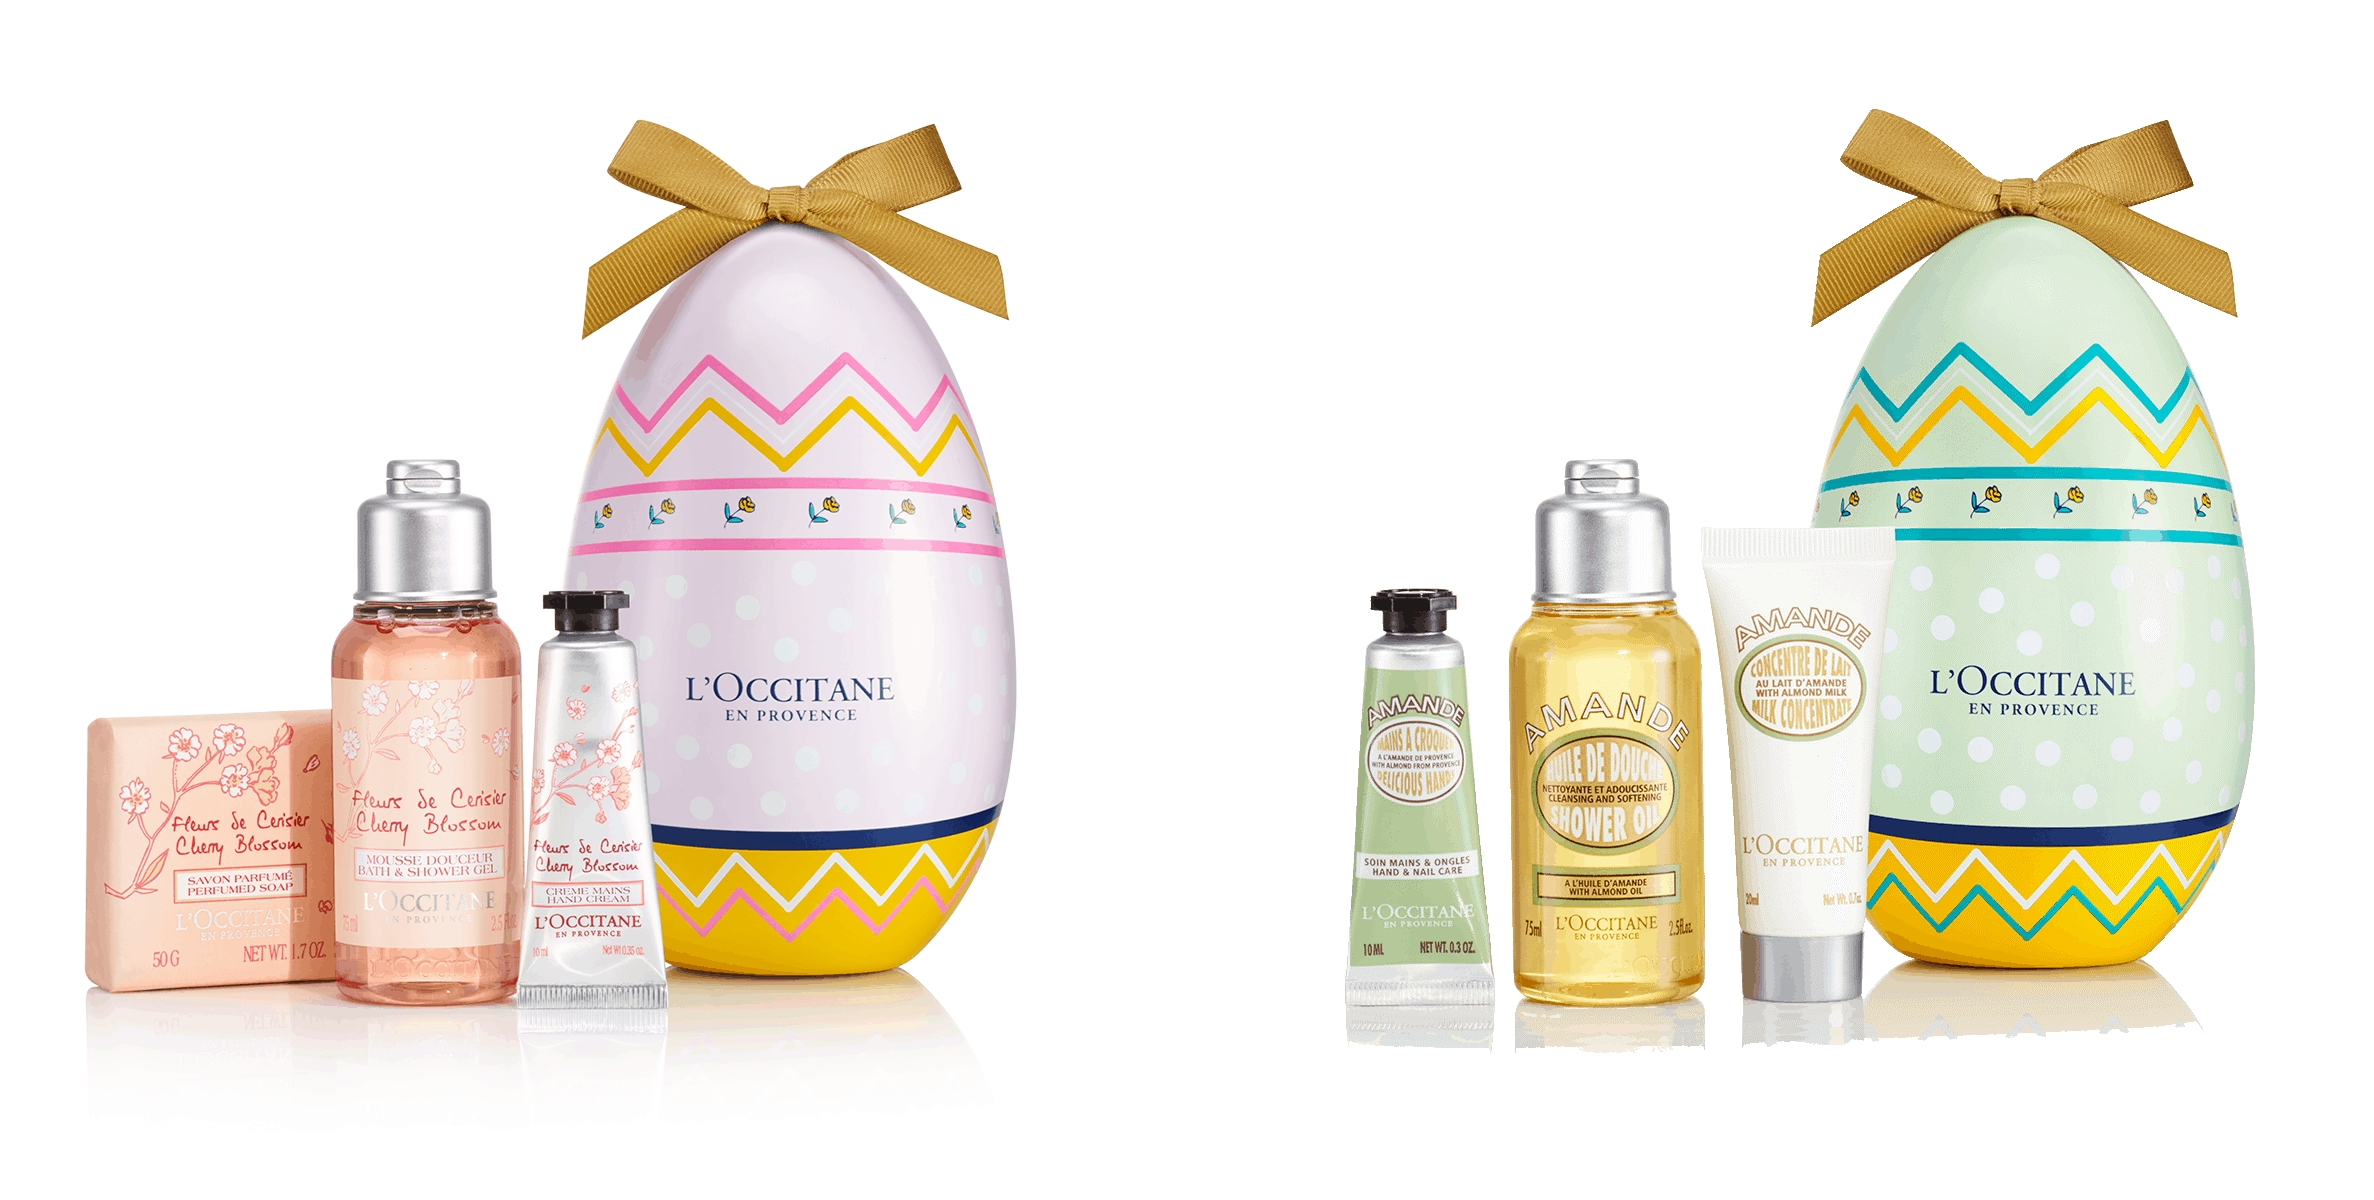 L'occitane Limited Edition 2020 Beauty Eggs Available Now +